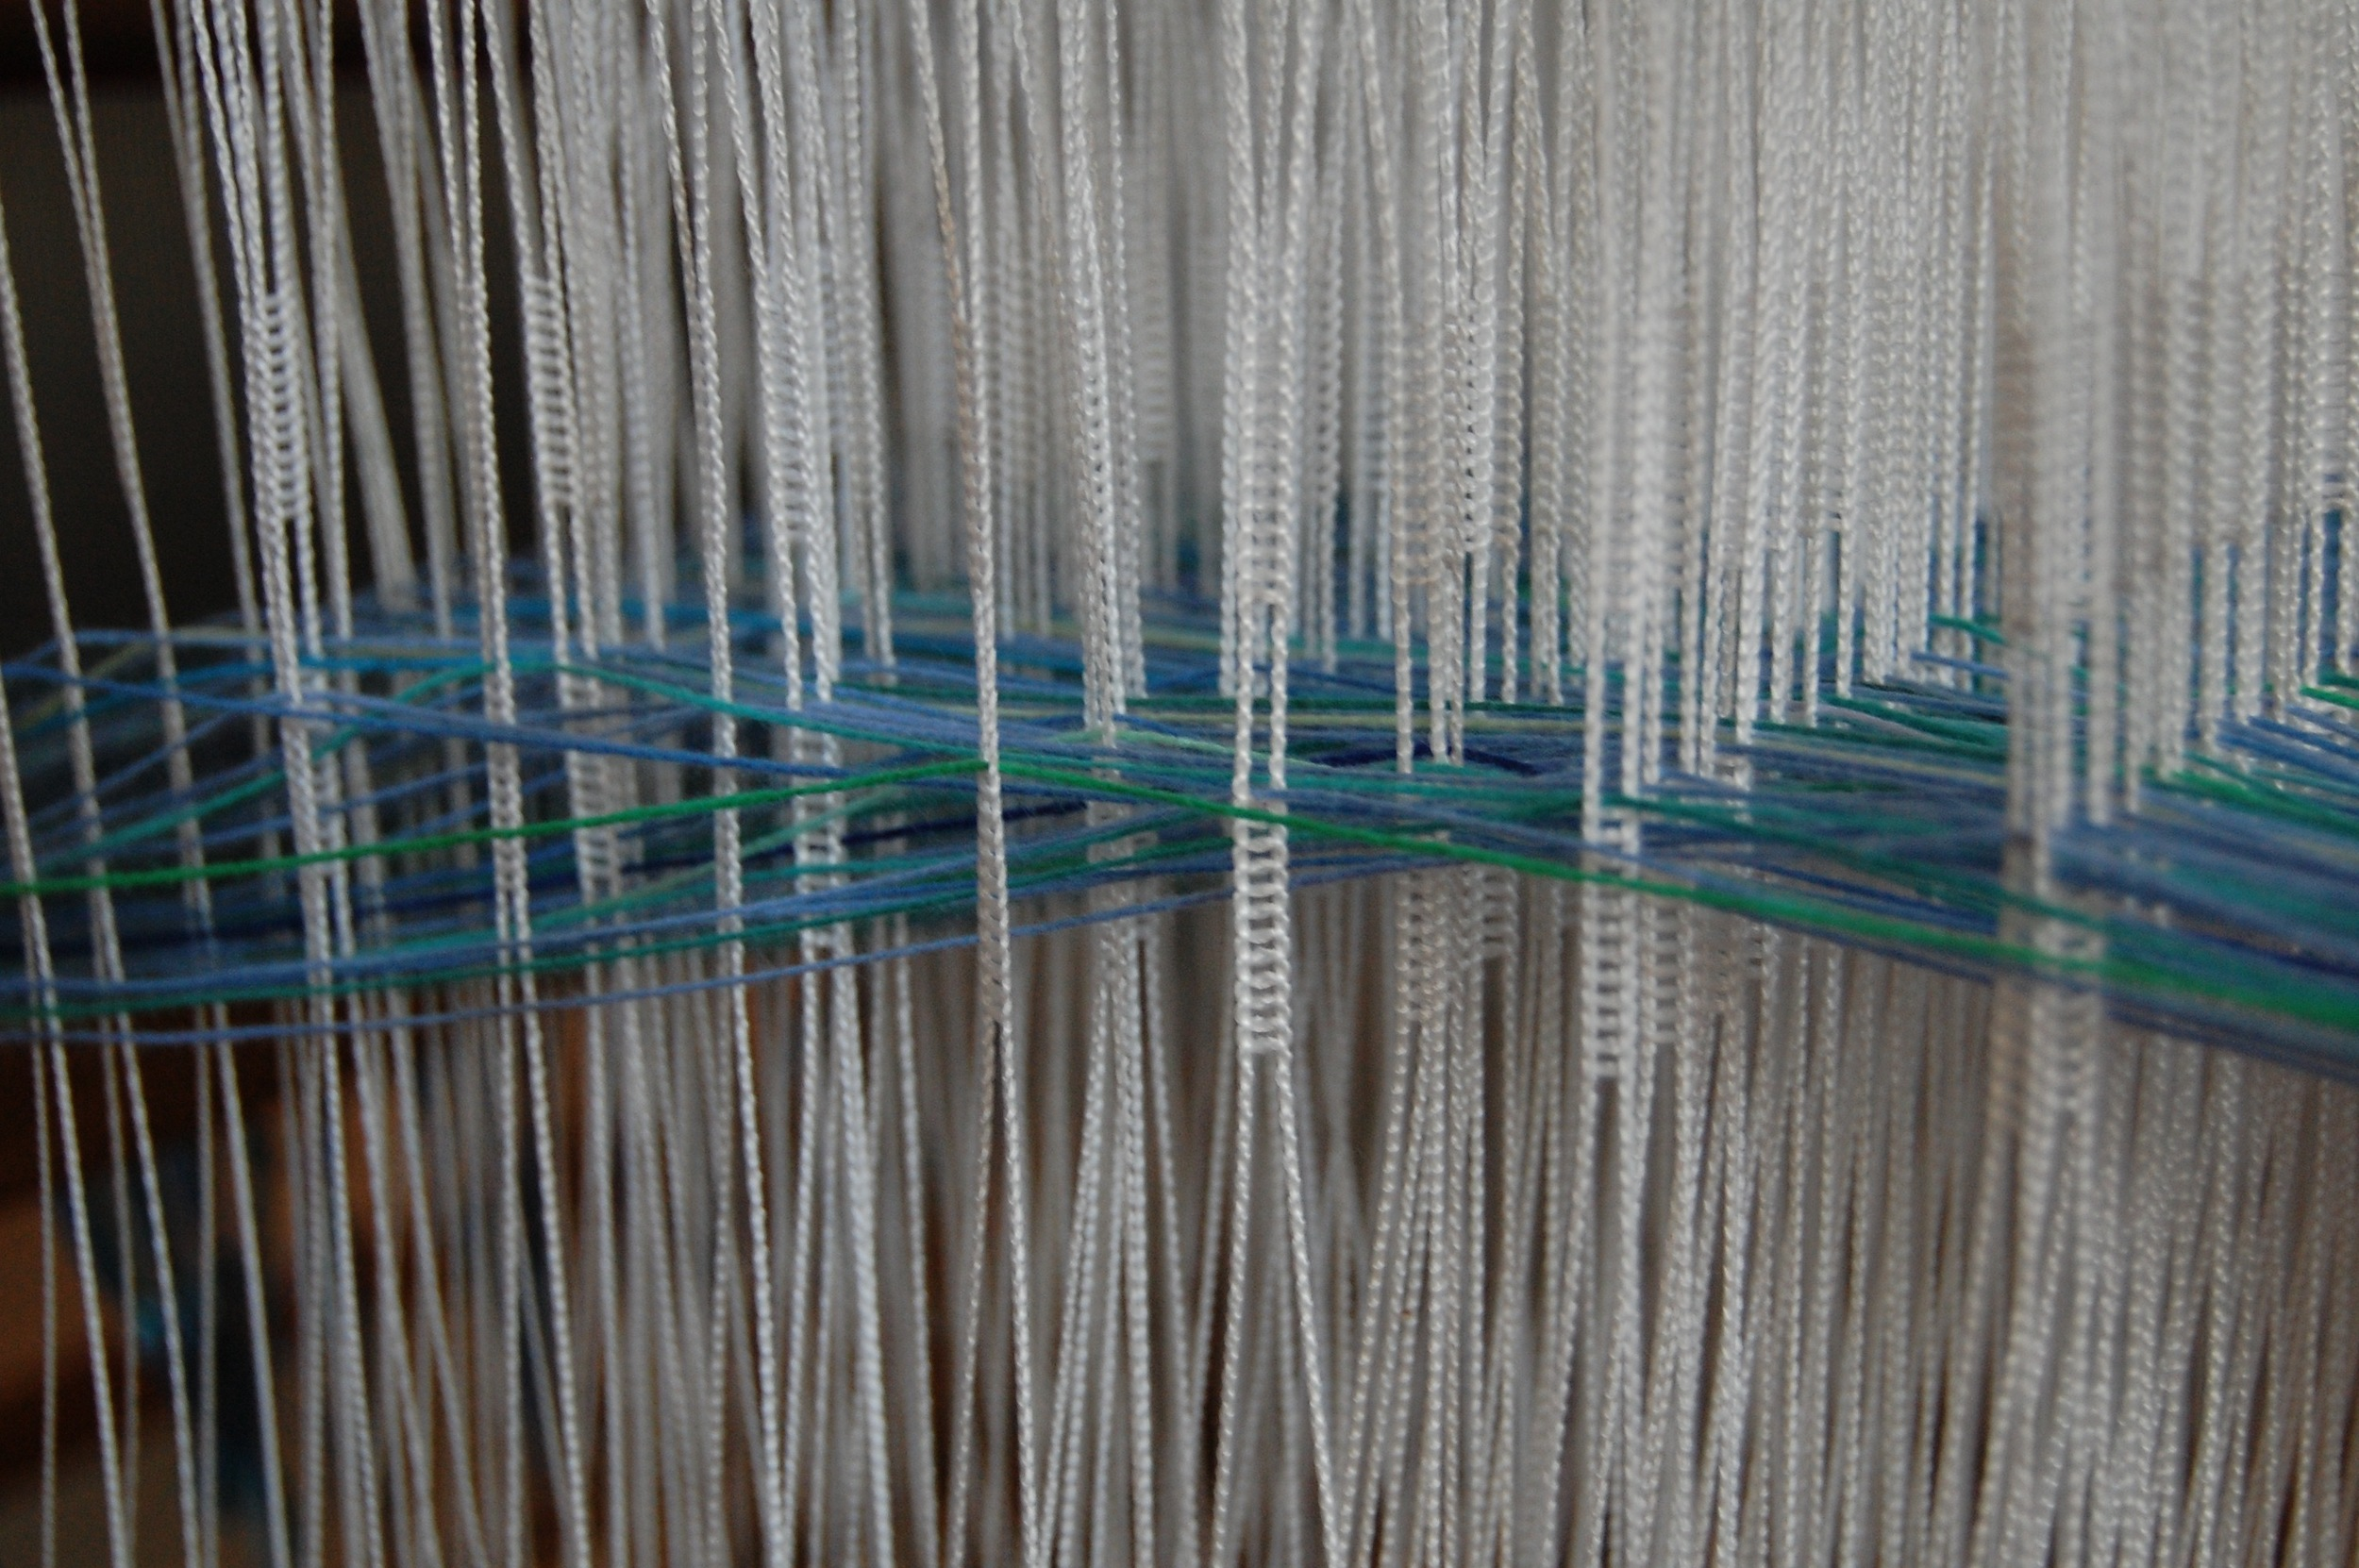 All the beautiful heddles